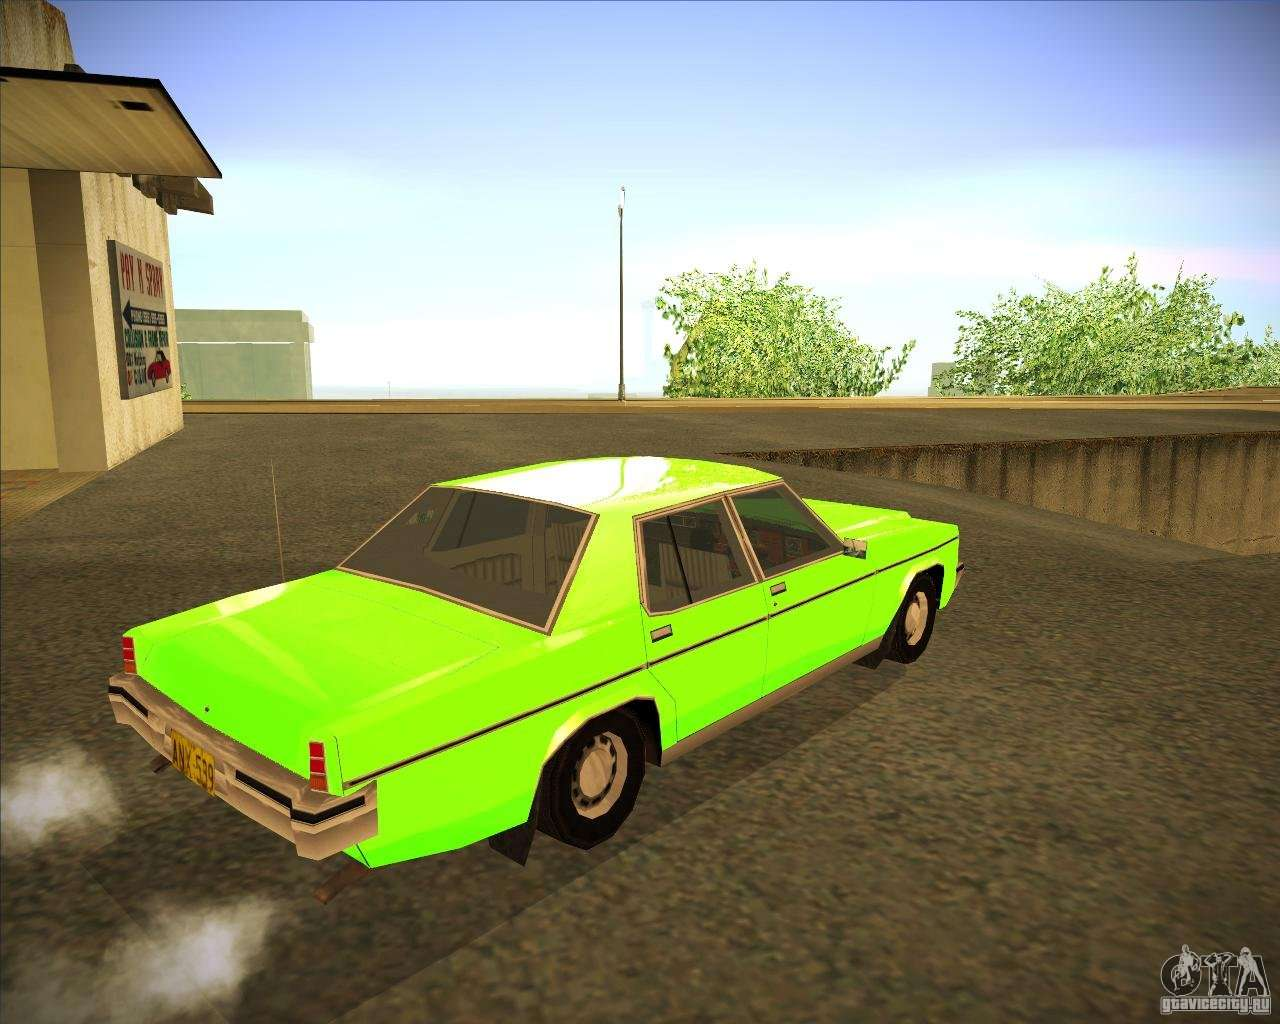 Holden Hx Statesman Deville 1976 For Gta San Andreas